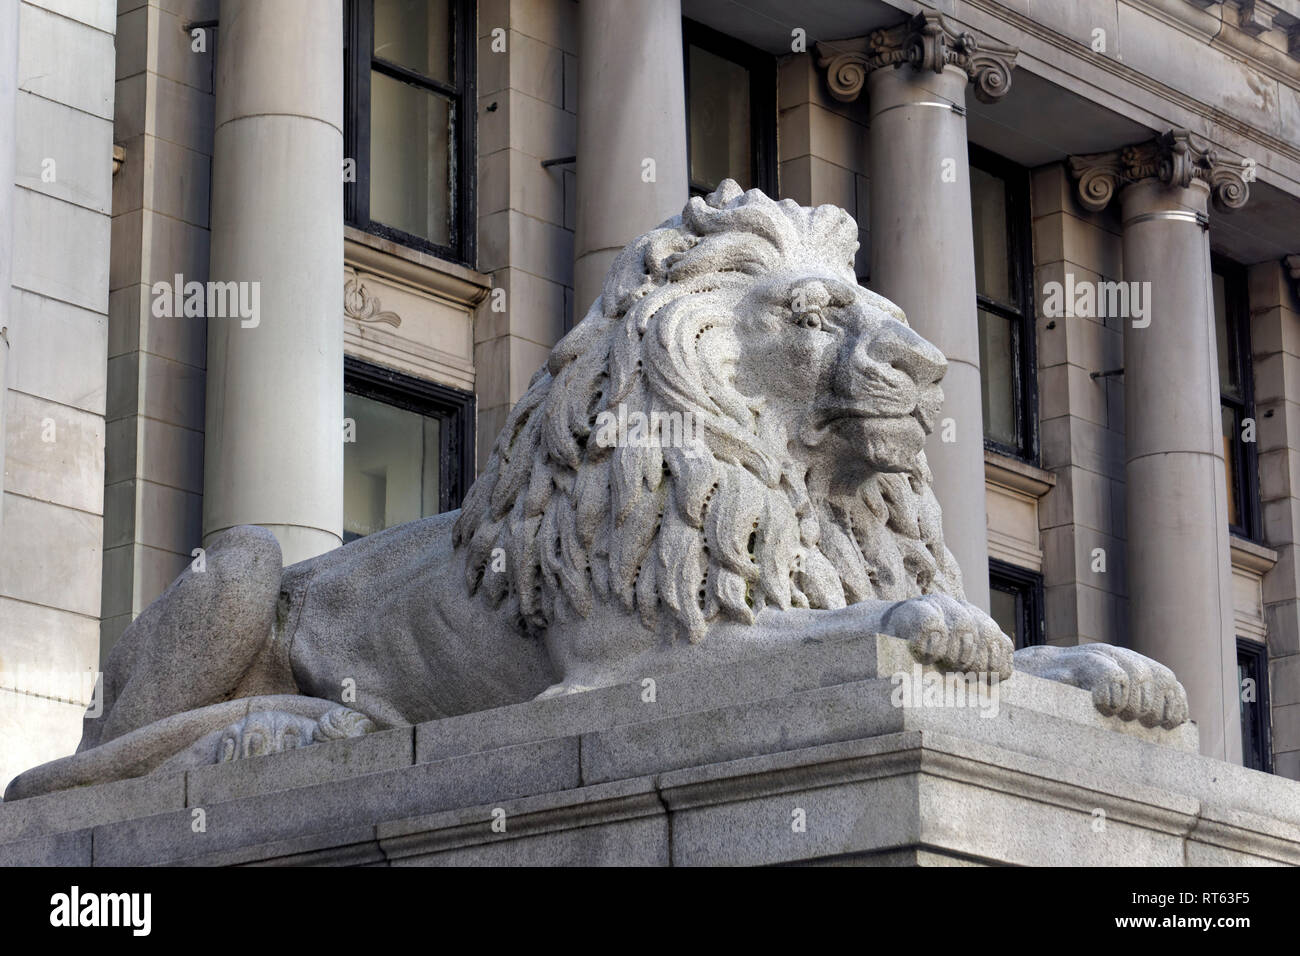 African lion granite statue outside the Vancouver Art Gallery, formerly the old court house building, Vancouver, BC, Canada - Stock Image